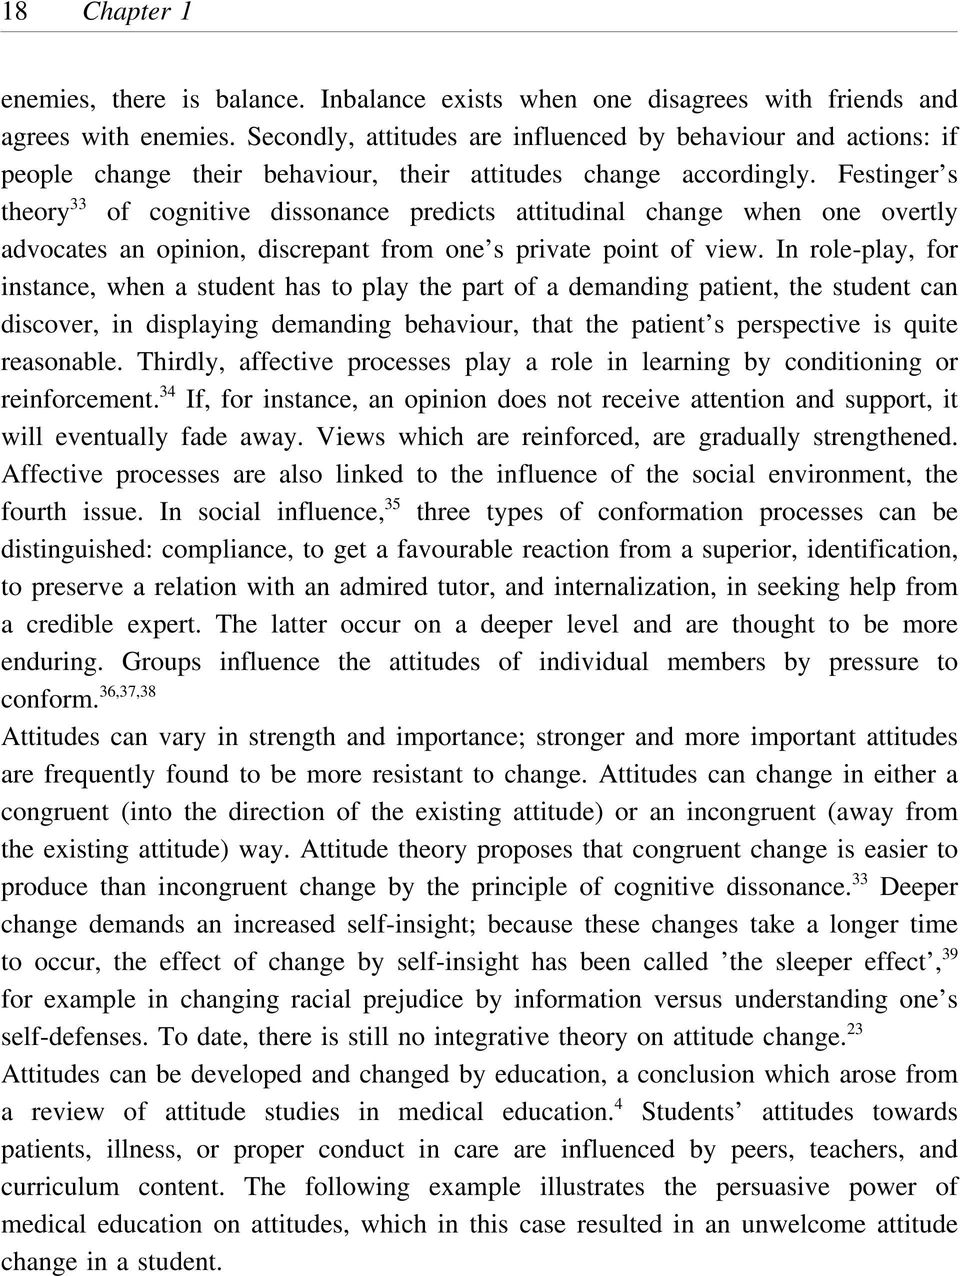 Festinger s theory 33 of cognitive dissonance predicts attitudinal change when one overtly advocates an opinion, discrepant from one s private point of view.